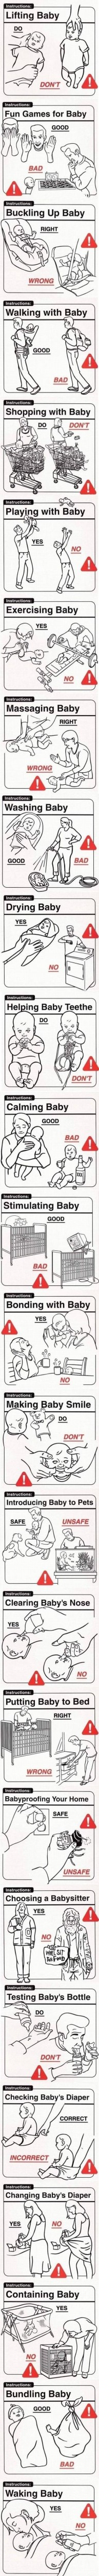 parenting do's and don'ts!!